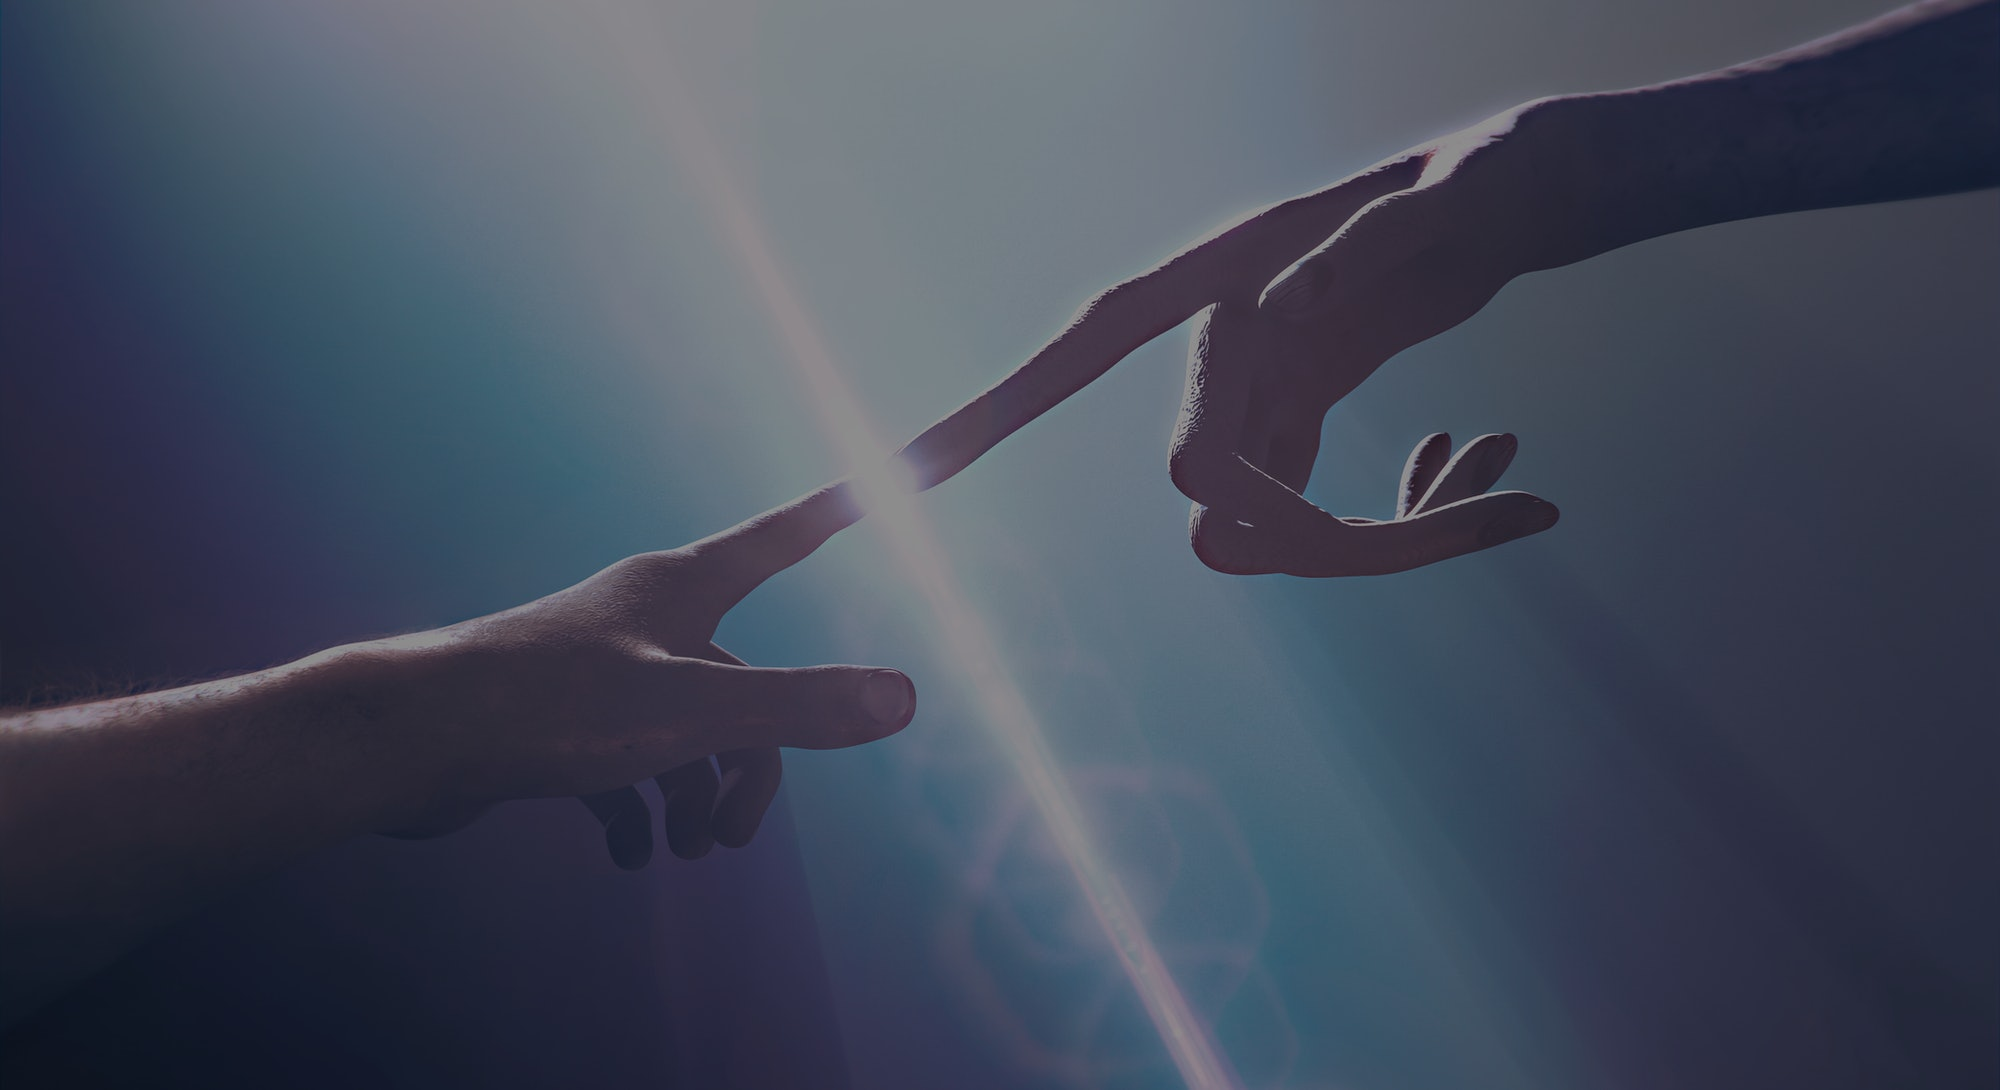 Extraterrestrial hand contact human hand - alien first contact  - artistic representation - 3d rende...